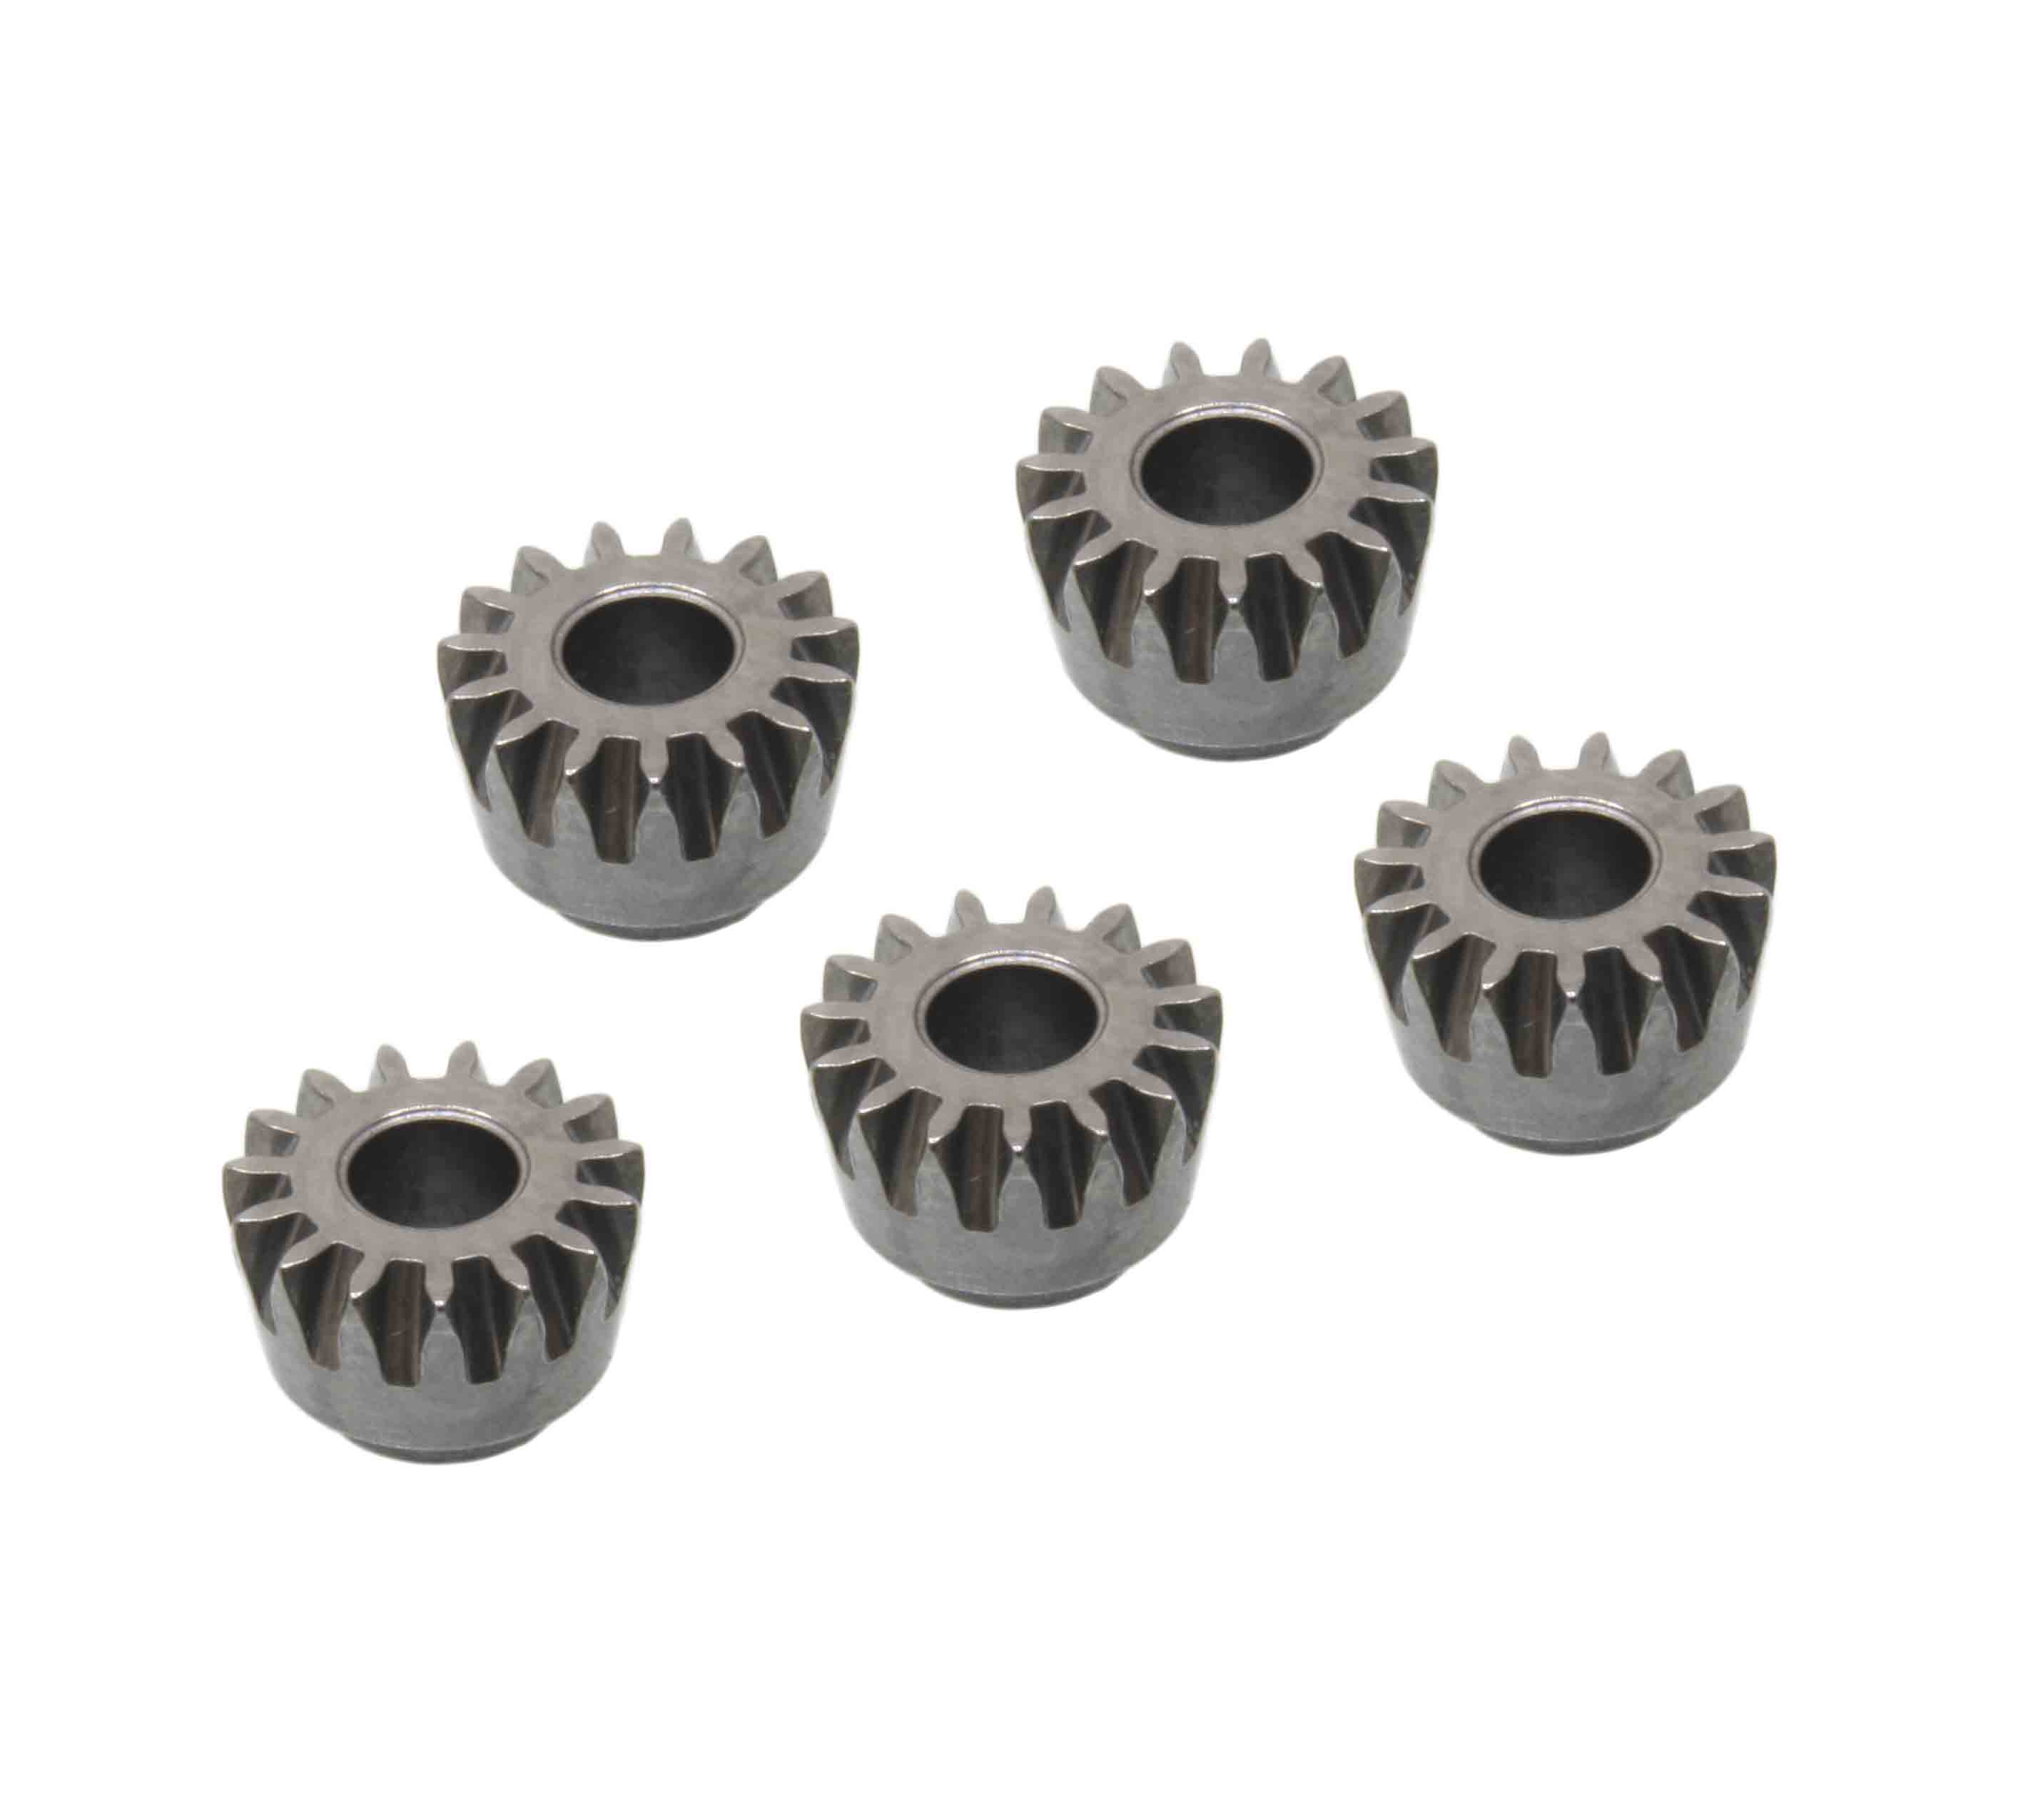 A10620.0, 5-pack front gear 25LP ZST